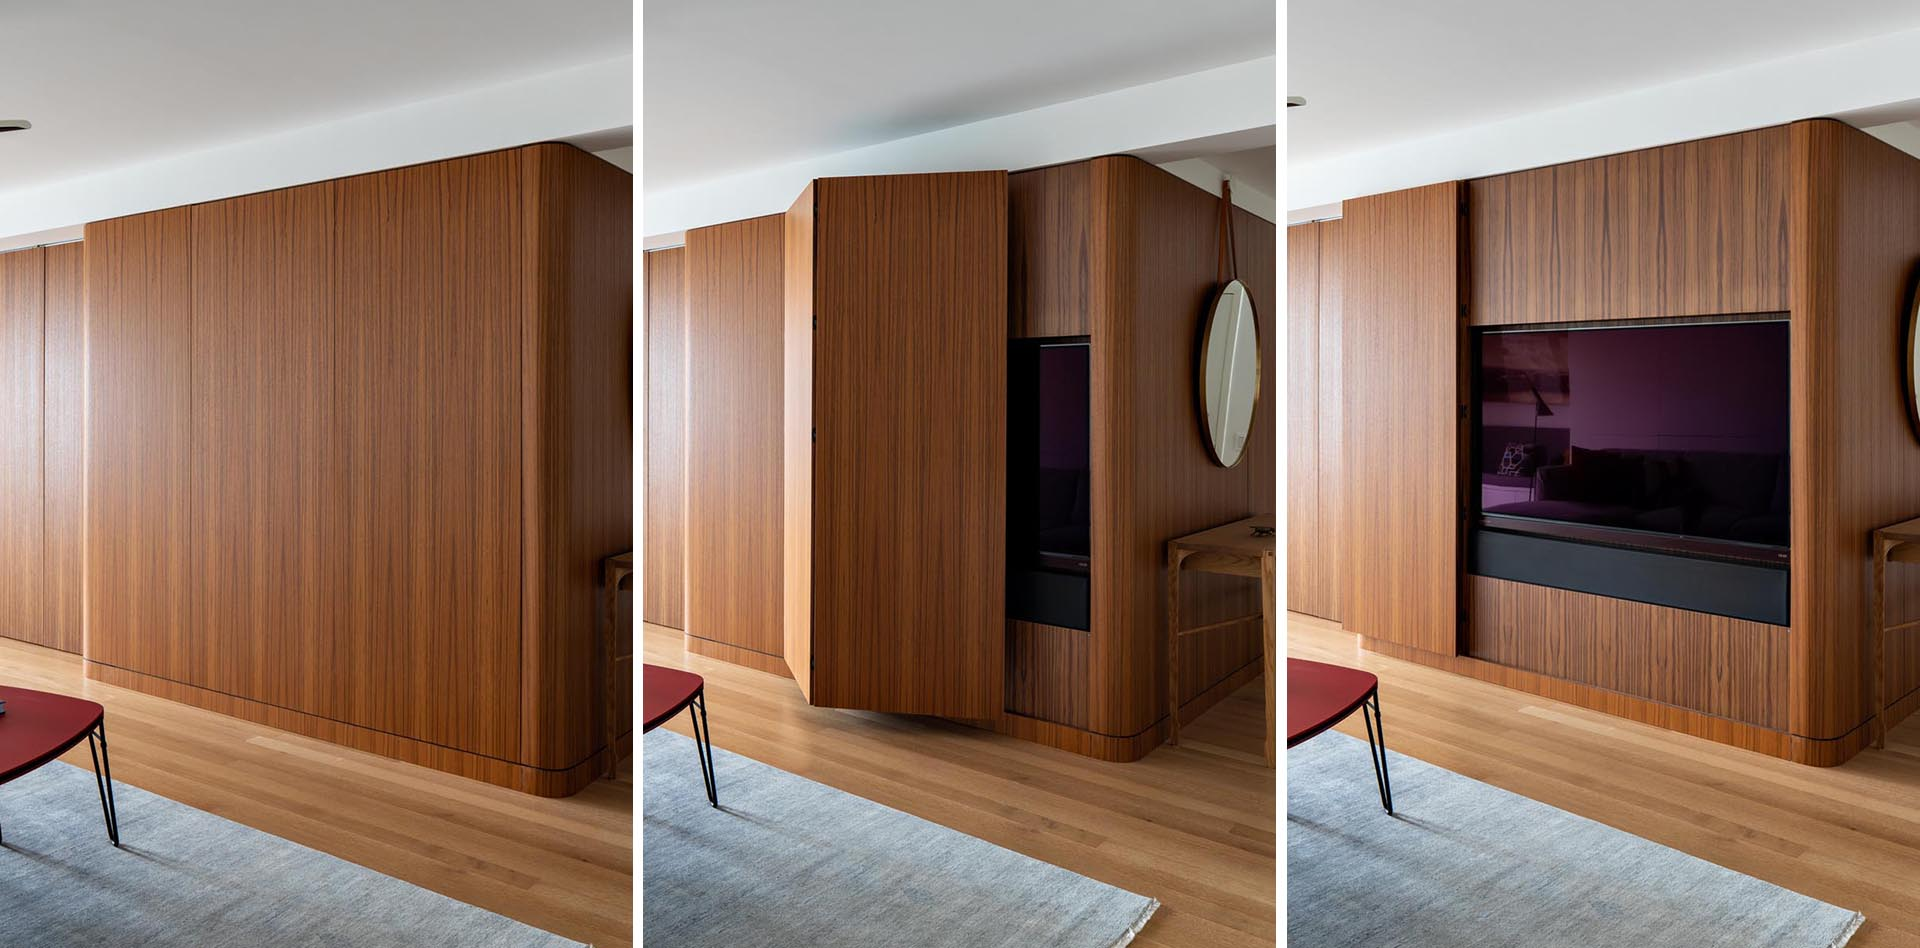 A modern apartment with a wood wall that hides the tv.